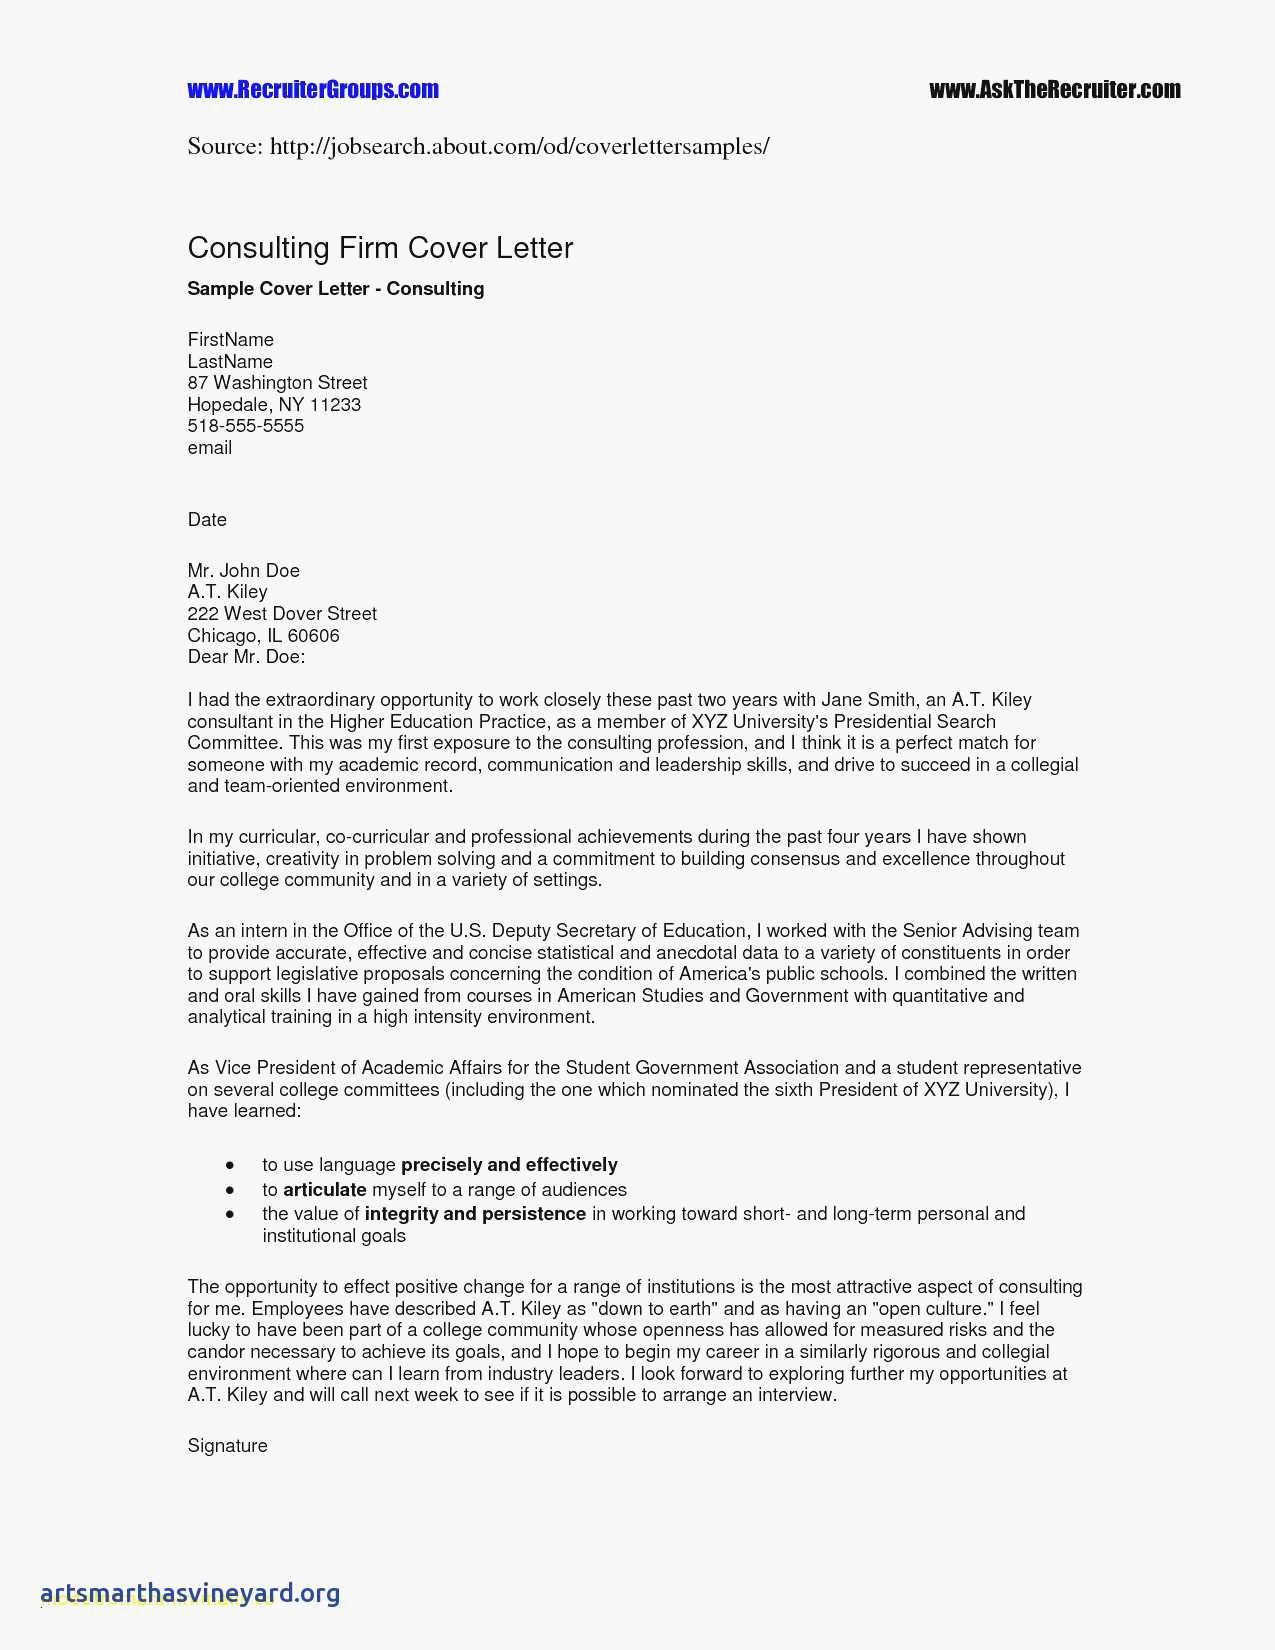 open office template letter example-Openoffice Vorlage Lebenslauf Neu Openoffice Datenbank Vorlagen Schön Lebenslauf Muster Download Open fice 14-r